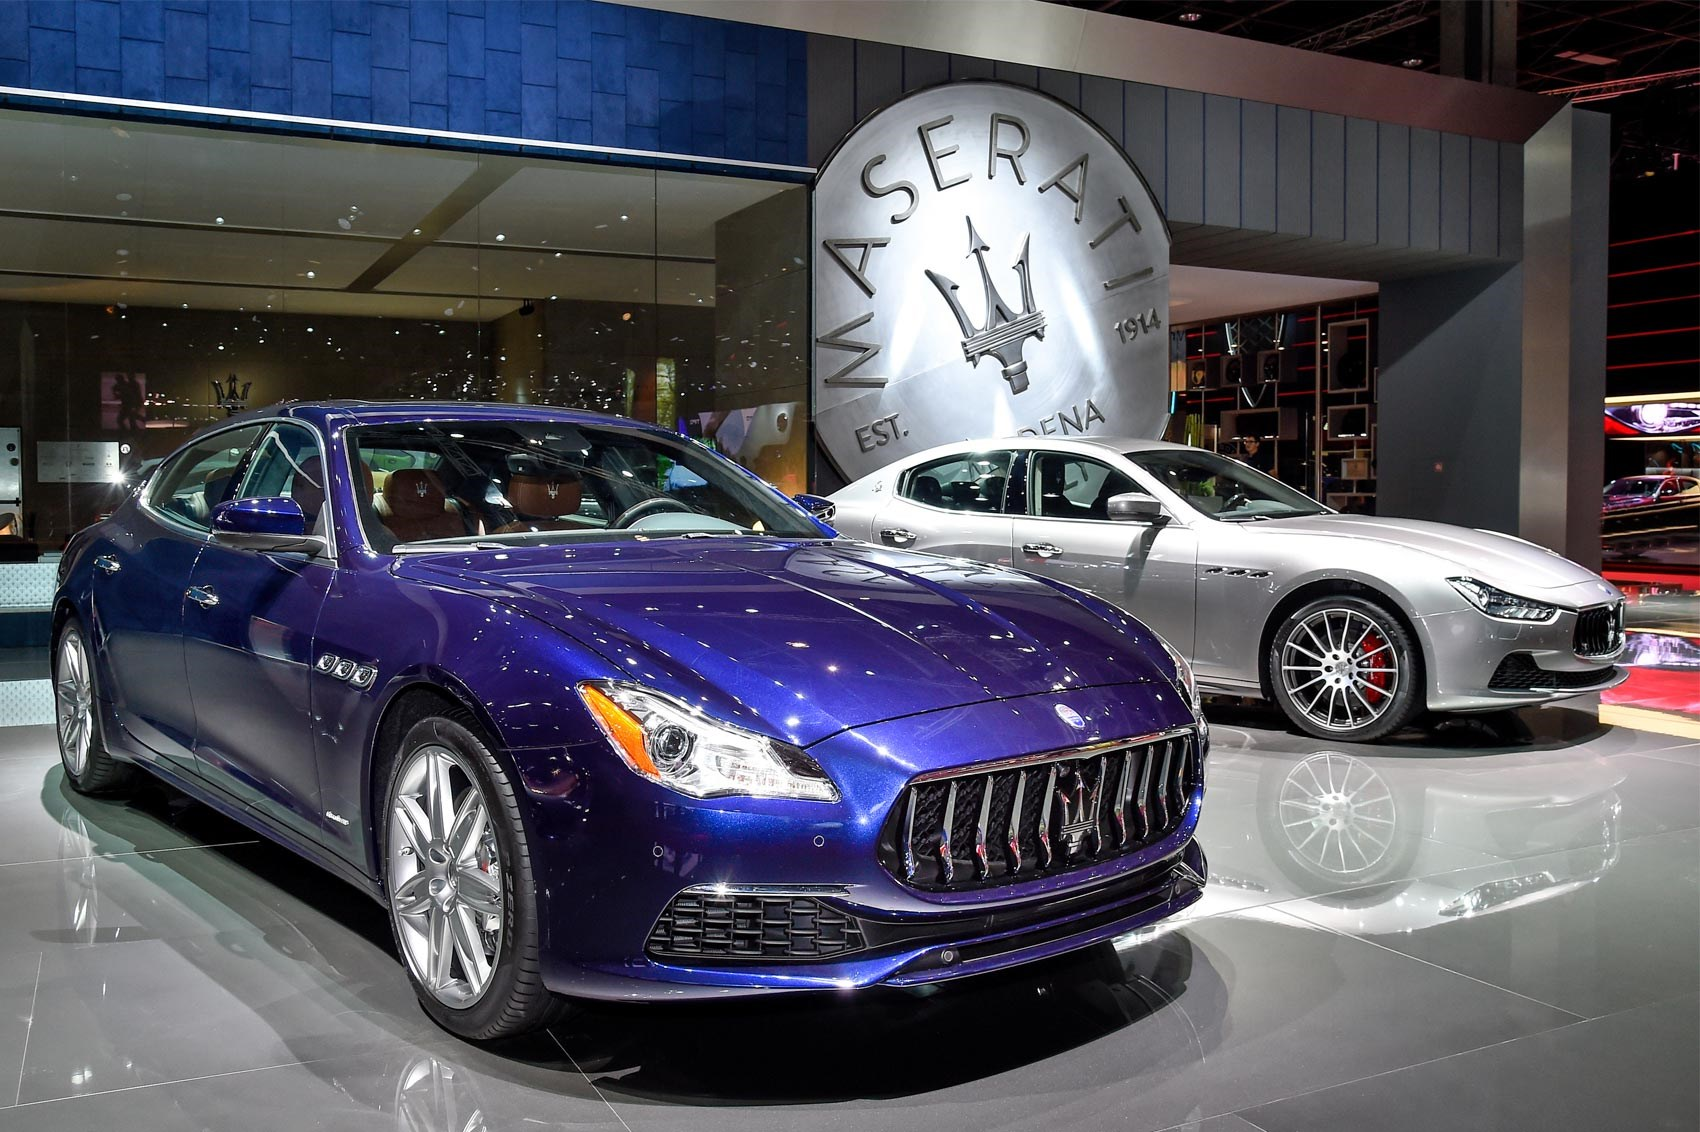 Revamped maserati quattroporte and ghibli make paris debut by car facelifted maseratis at the paris motor show sciox Gallery